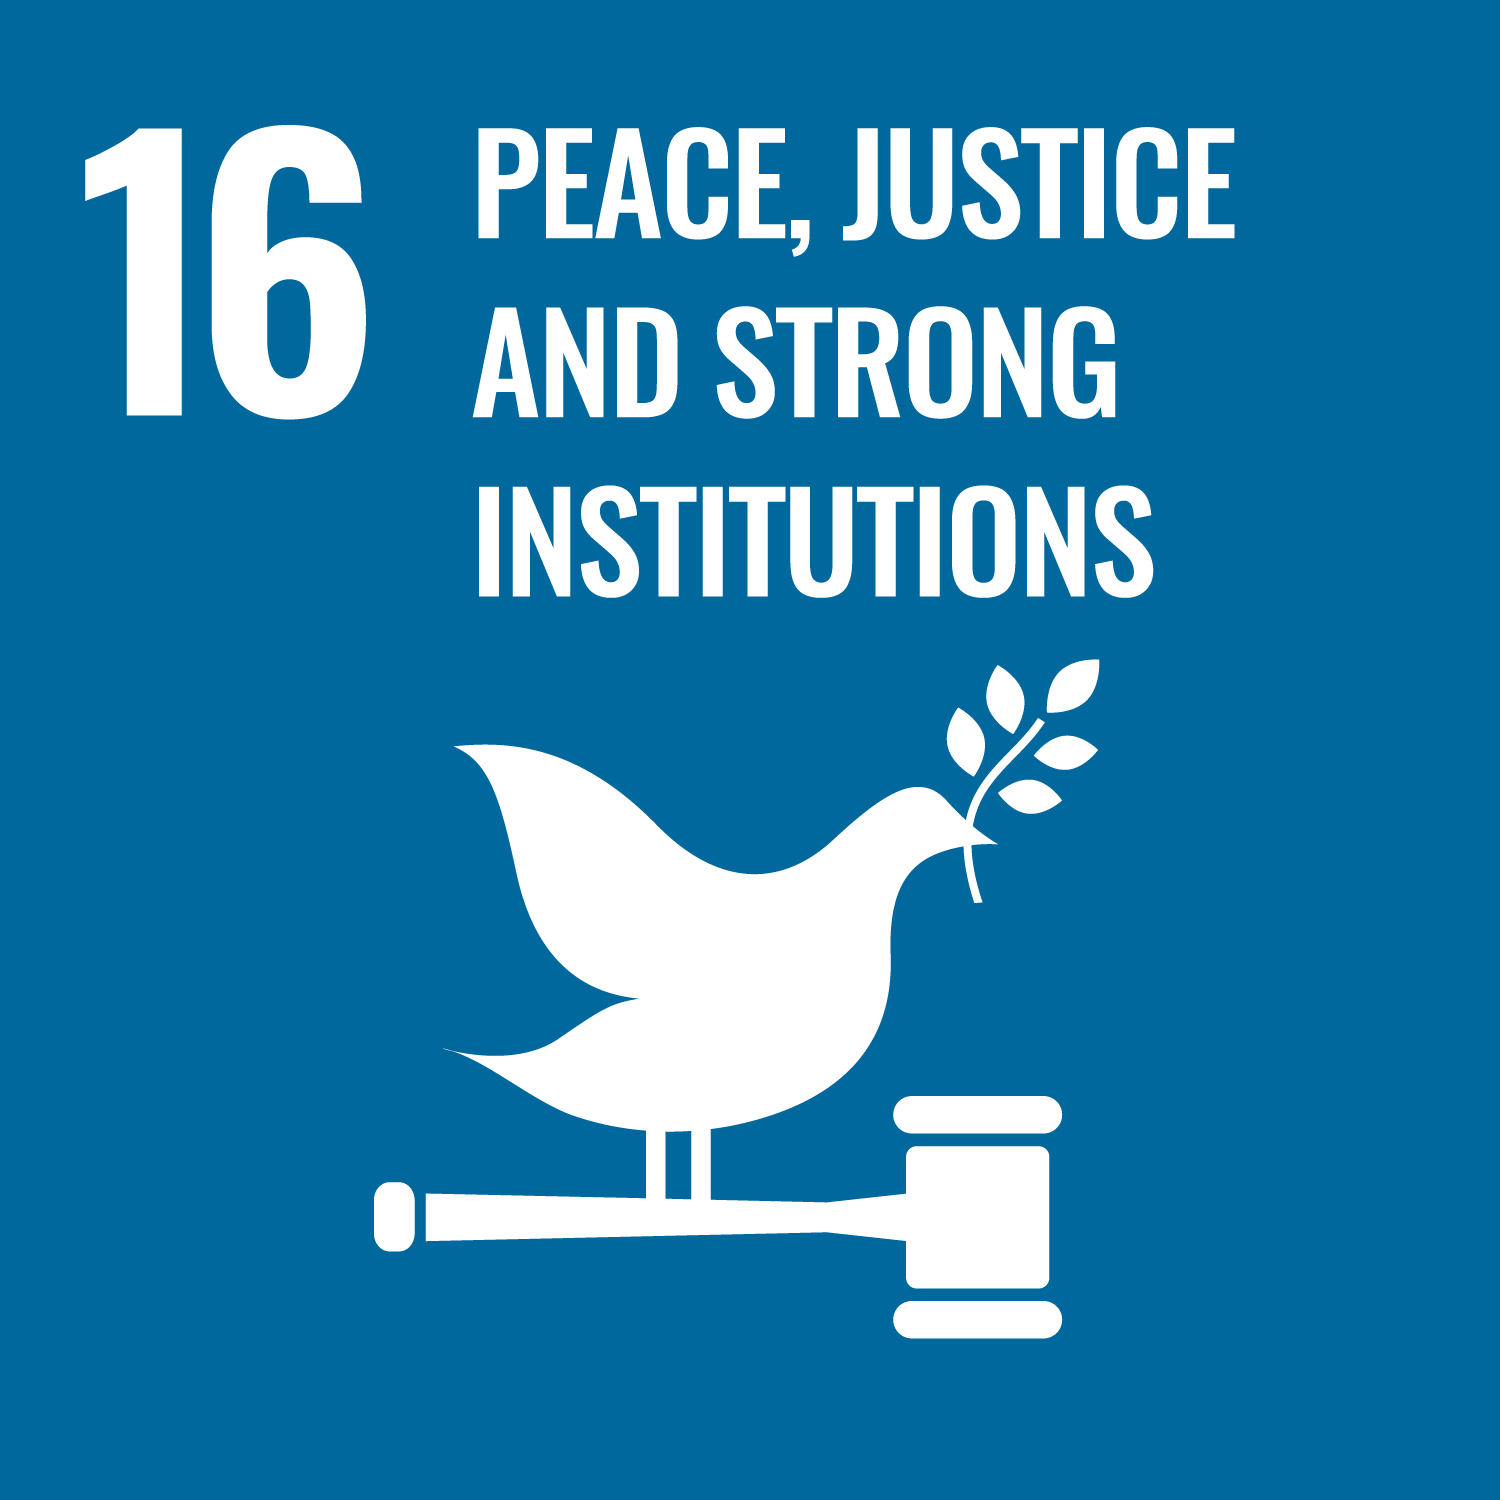 UN Sustainable Development Goal 16: Peace, Justice and Strong Institutions